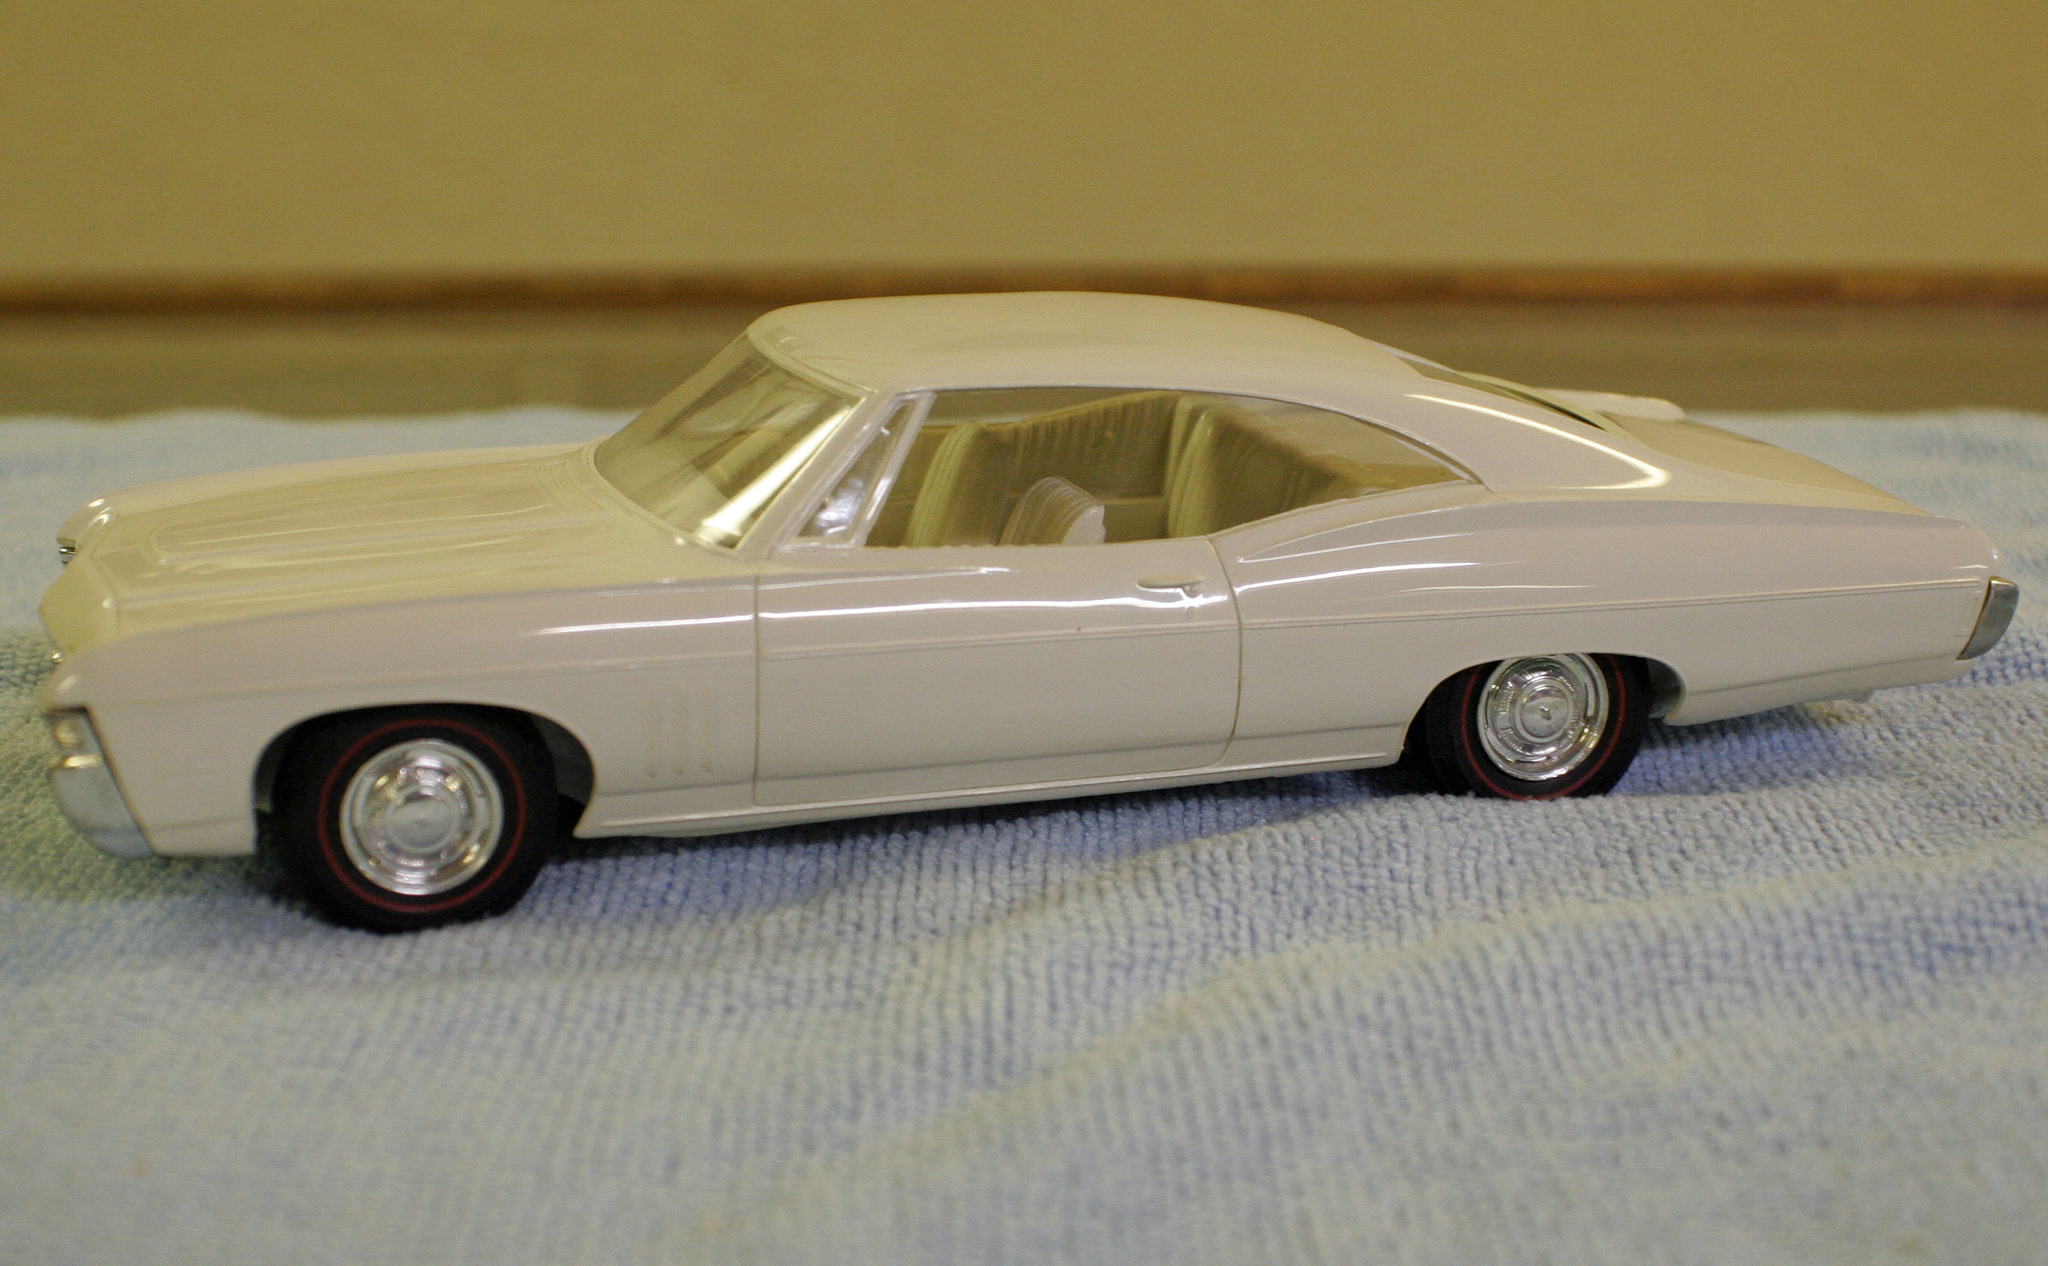 1968 Chevrolet Impala SS Fastback   Cars   hobbyDB 1968 Chevrolet Impala SS 427 Sports Coupe Promo Model Car